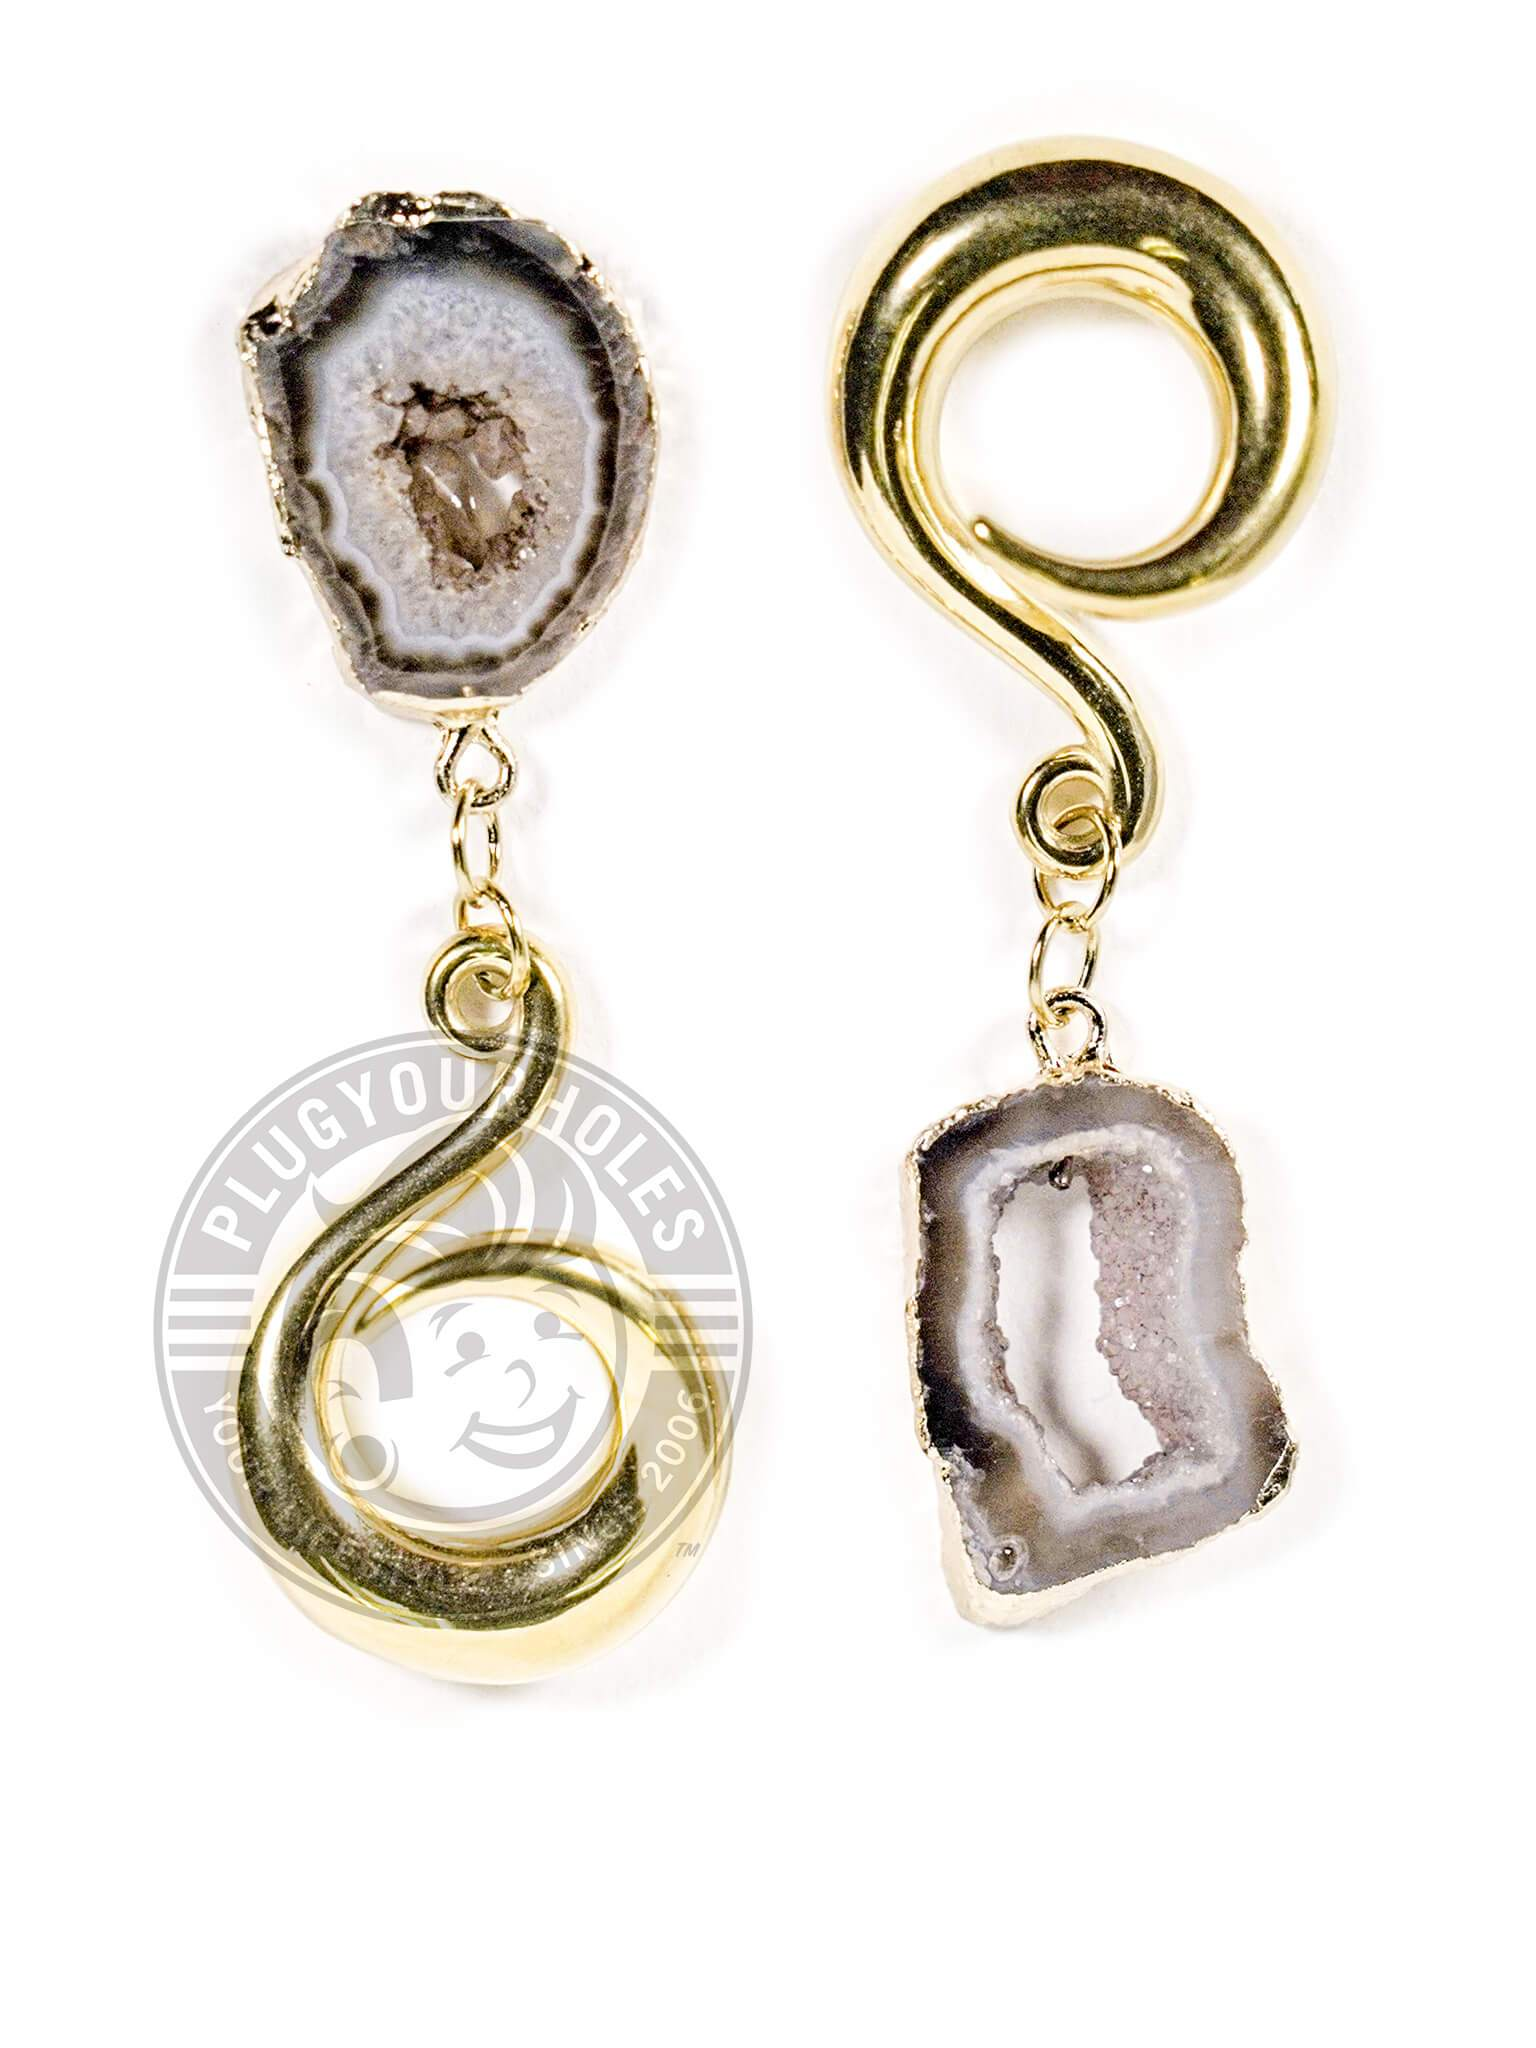 Small Grey Geode Slice Gold Curled Hook Hangers